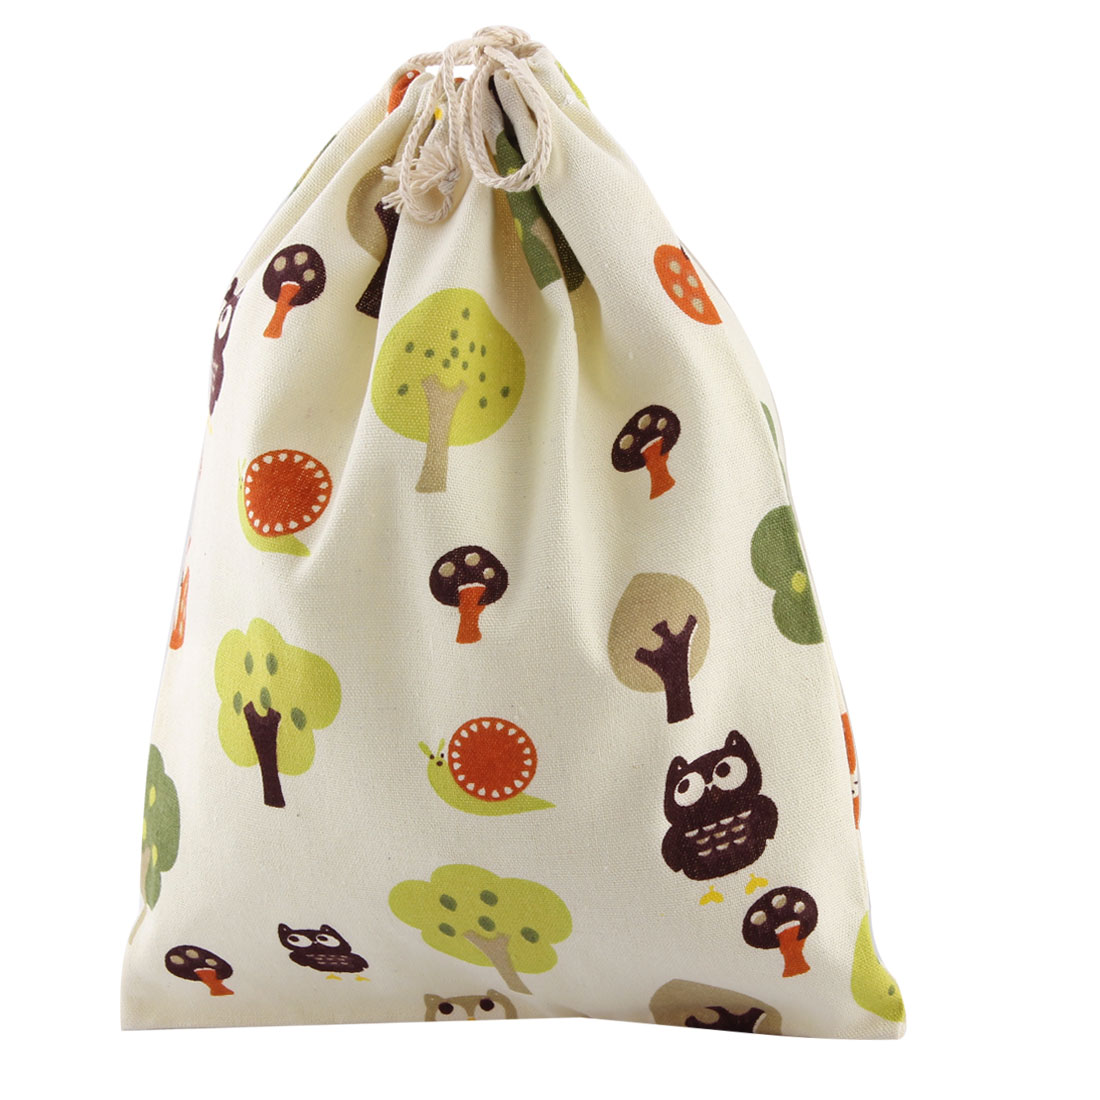 Outdoor Travel Cotton Blend Clothes Socks Storage Bag Drawstring Pouch